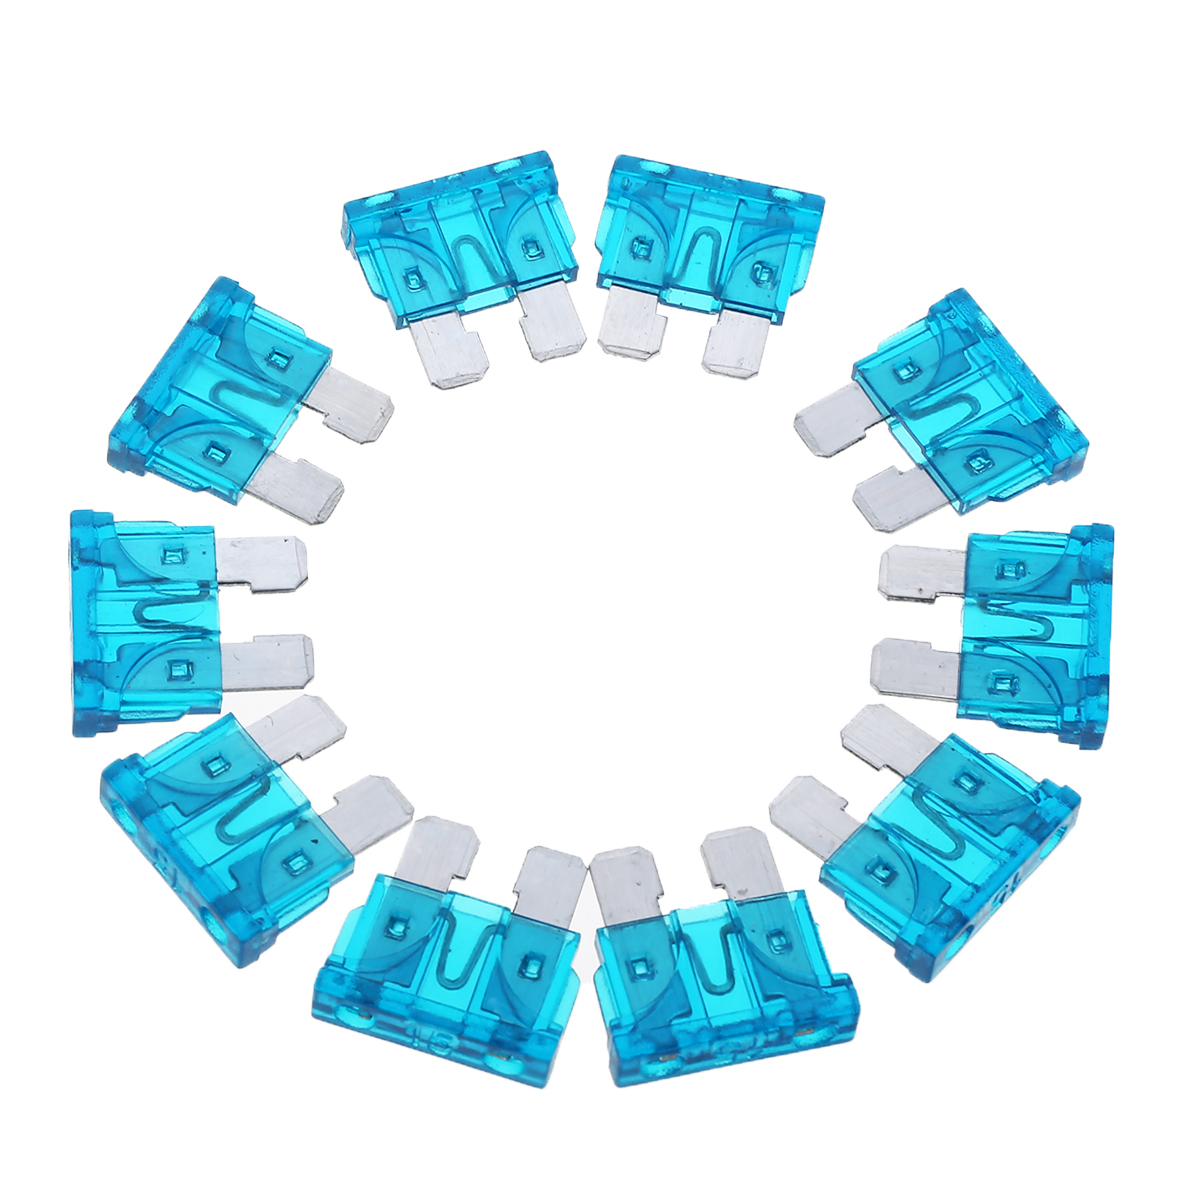 10Pcs 32V 15A Blue Color Coded Standard ATO/ATC Blade Fuse For Auto Car Truck 2019 New